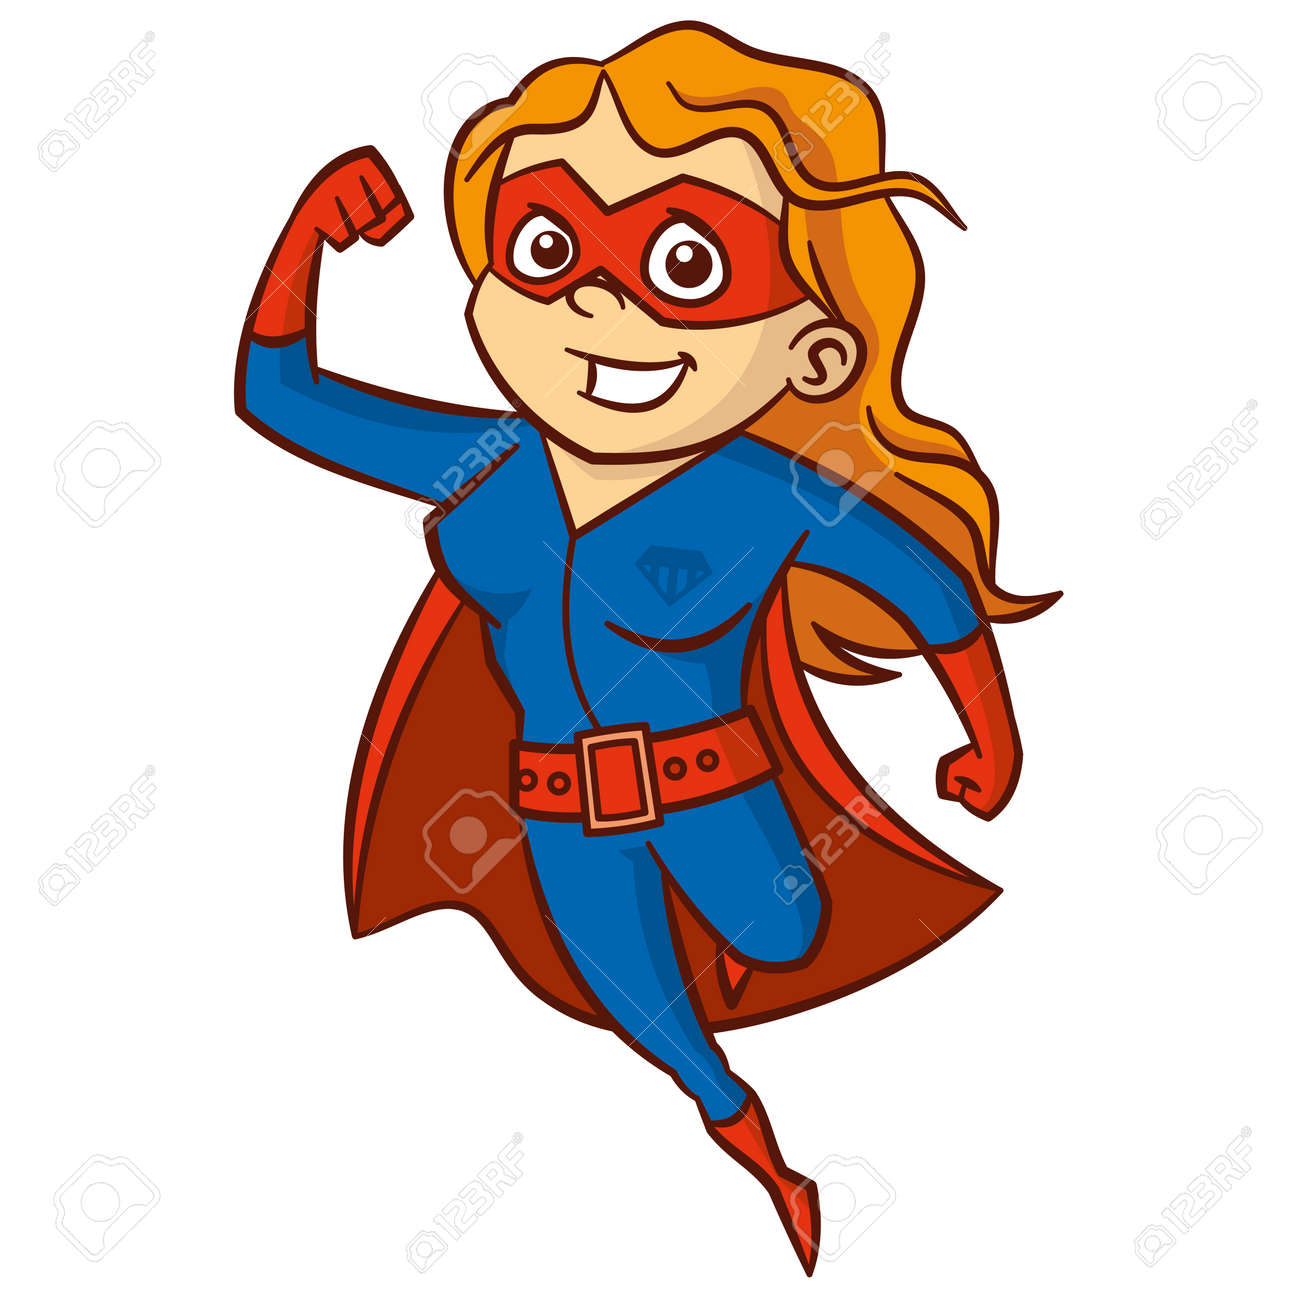 Superhero Red Haired Woman Cartoon Character Isolated Royalty Free Cliparts Vectors And Stock Illustration Image 86220463